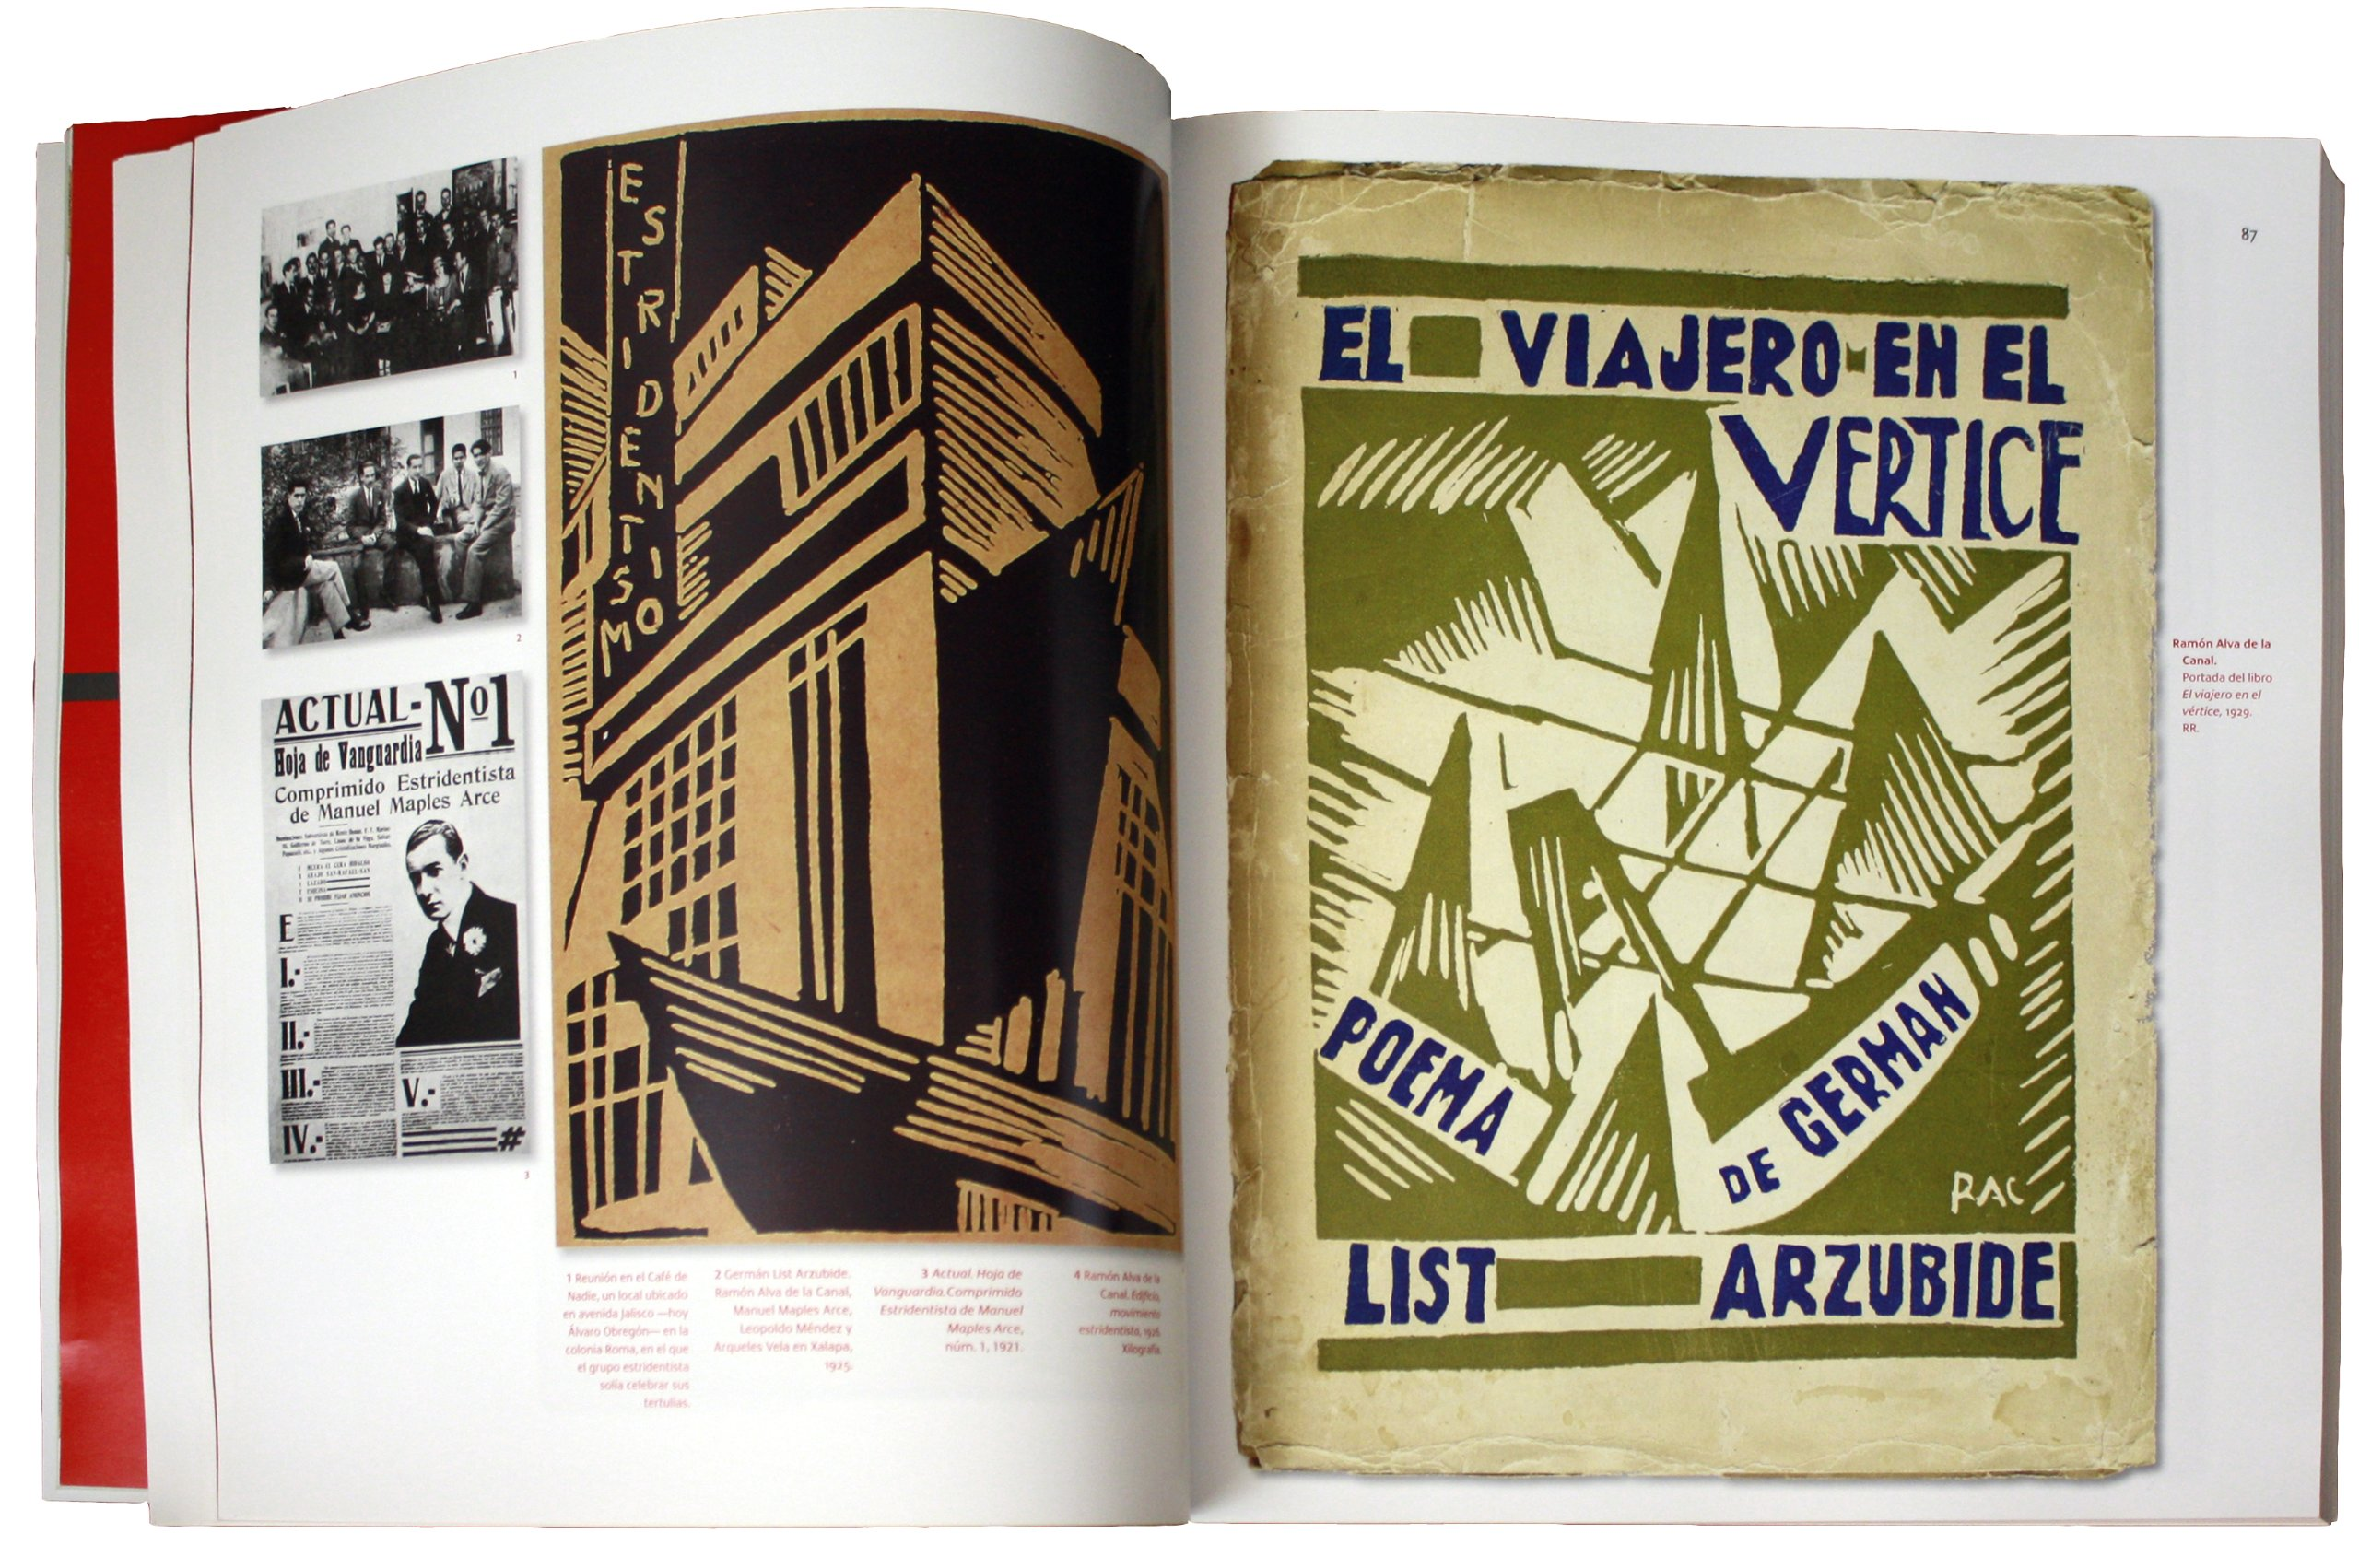 Diseño grafico en México 100 años 1900-2000 / Graphic Design in Mexico 100 years 1900-2000: Amazon.es: Giovanni Troconi, Luis Almeida: Libros